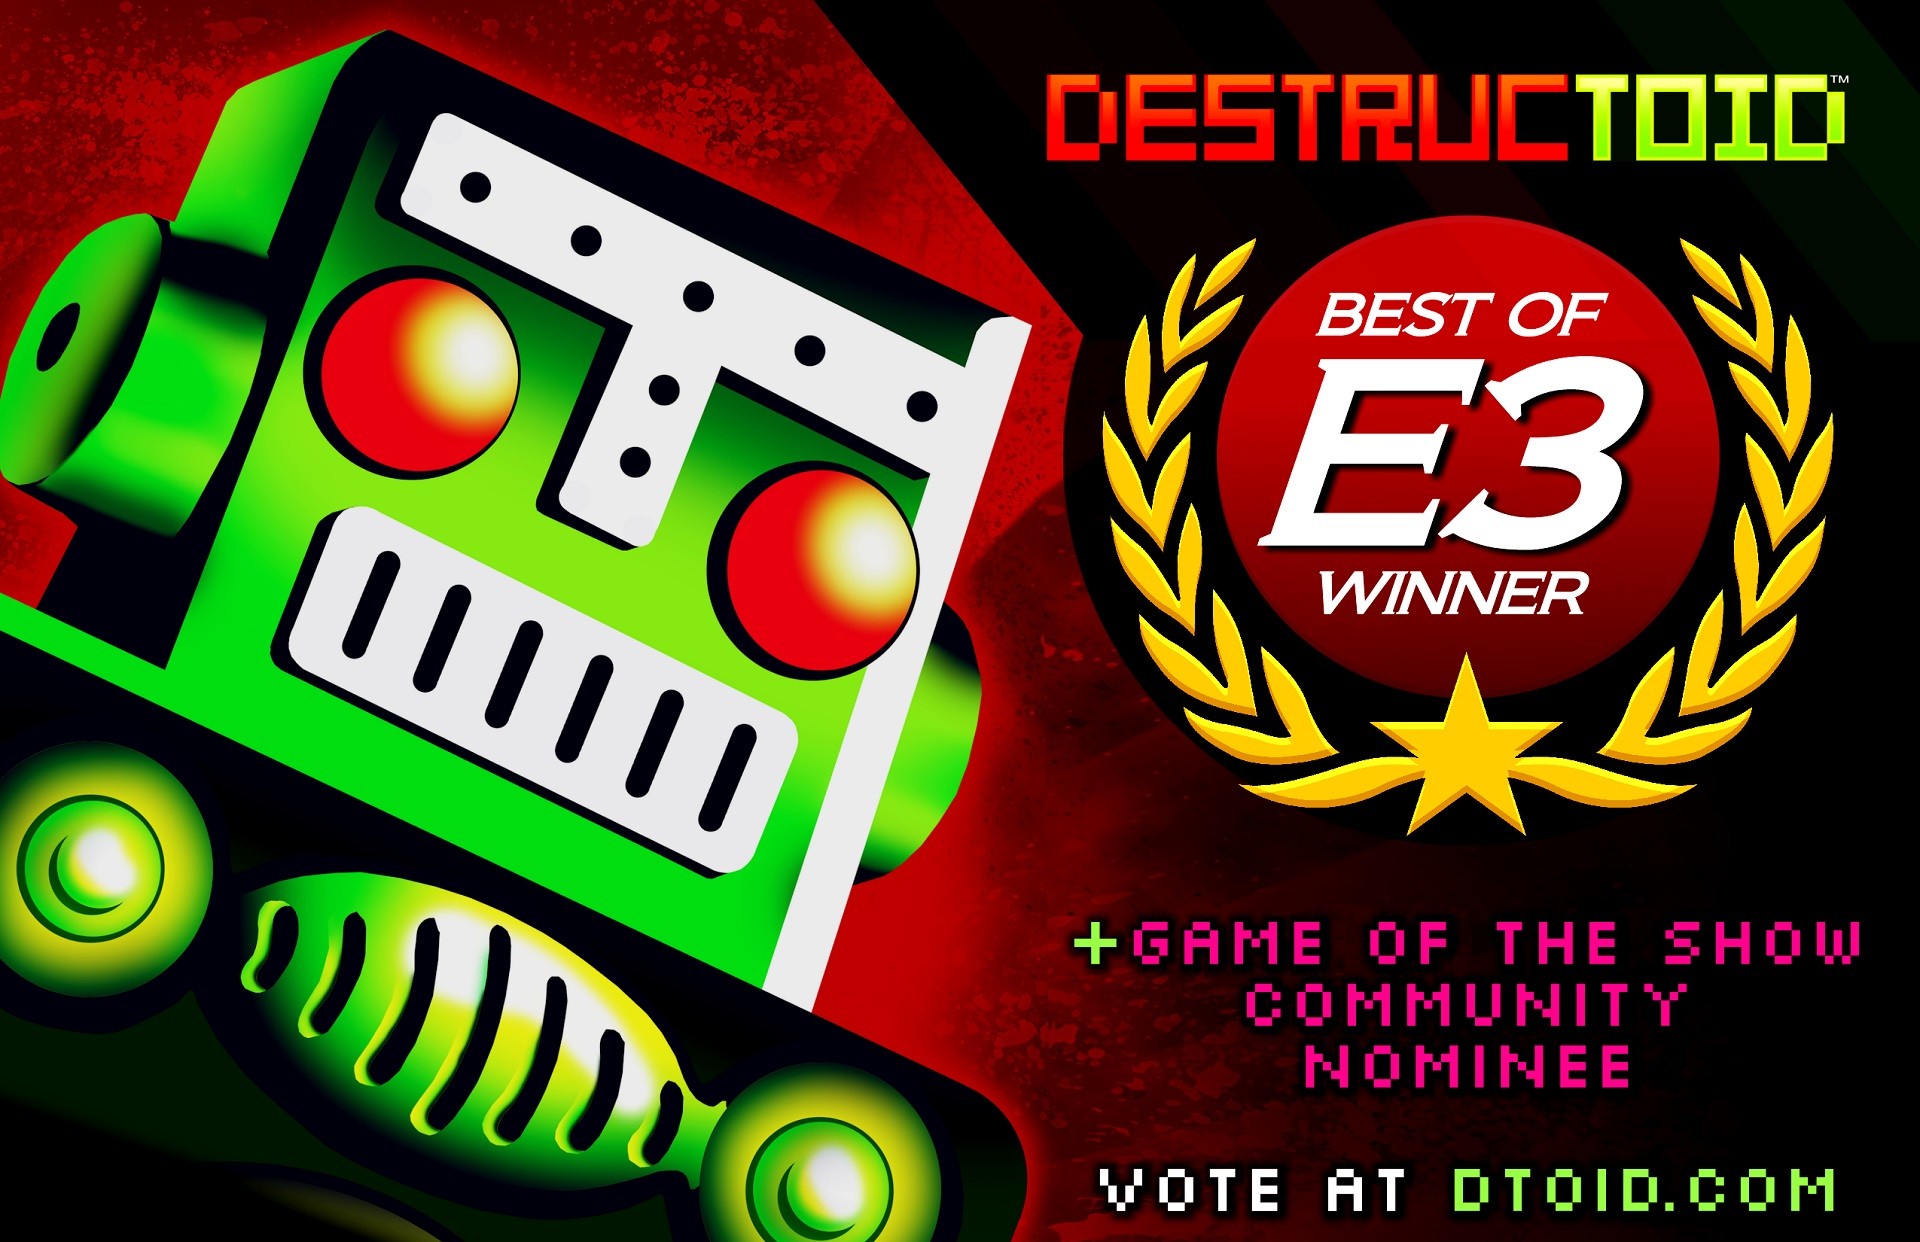 Here are the nominees for Destructoid's Game of the Show at E3 2019 screenshot